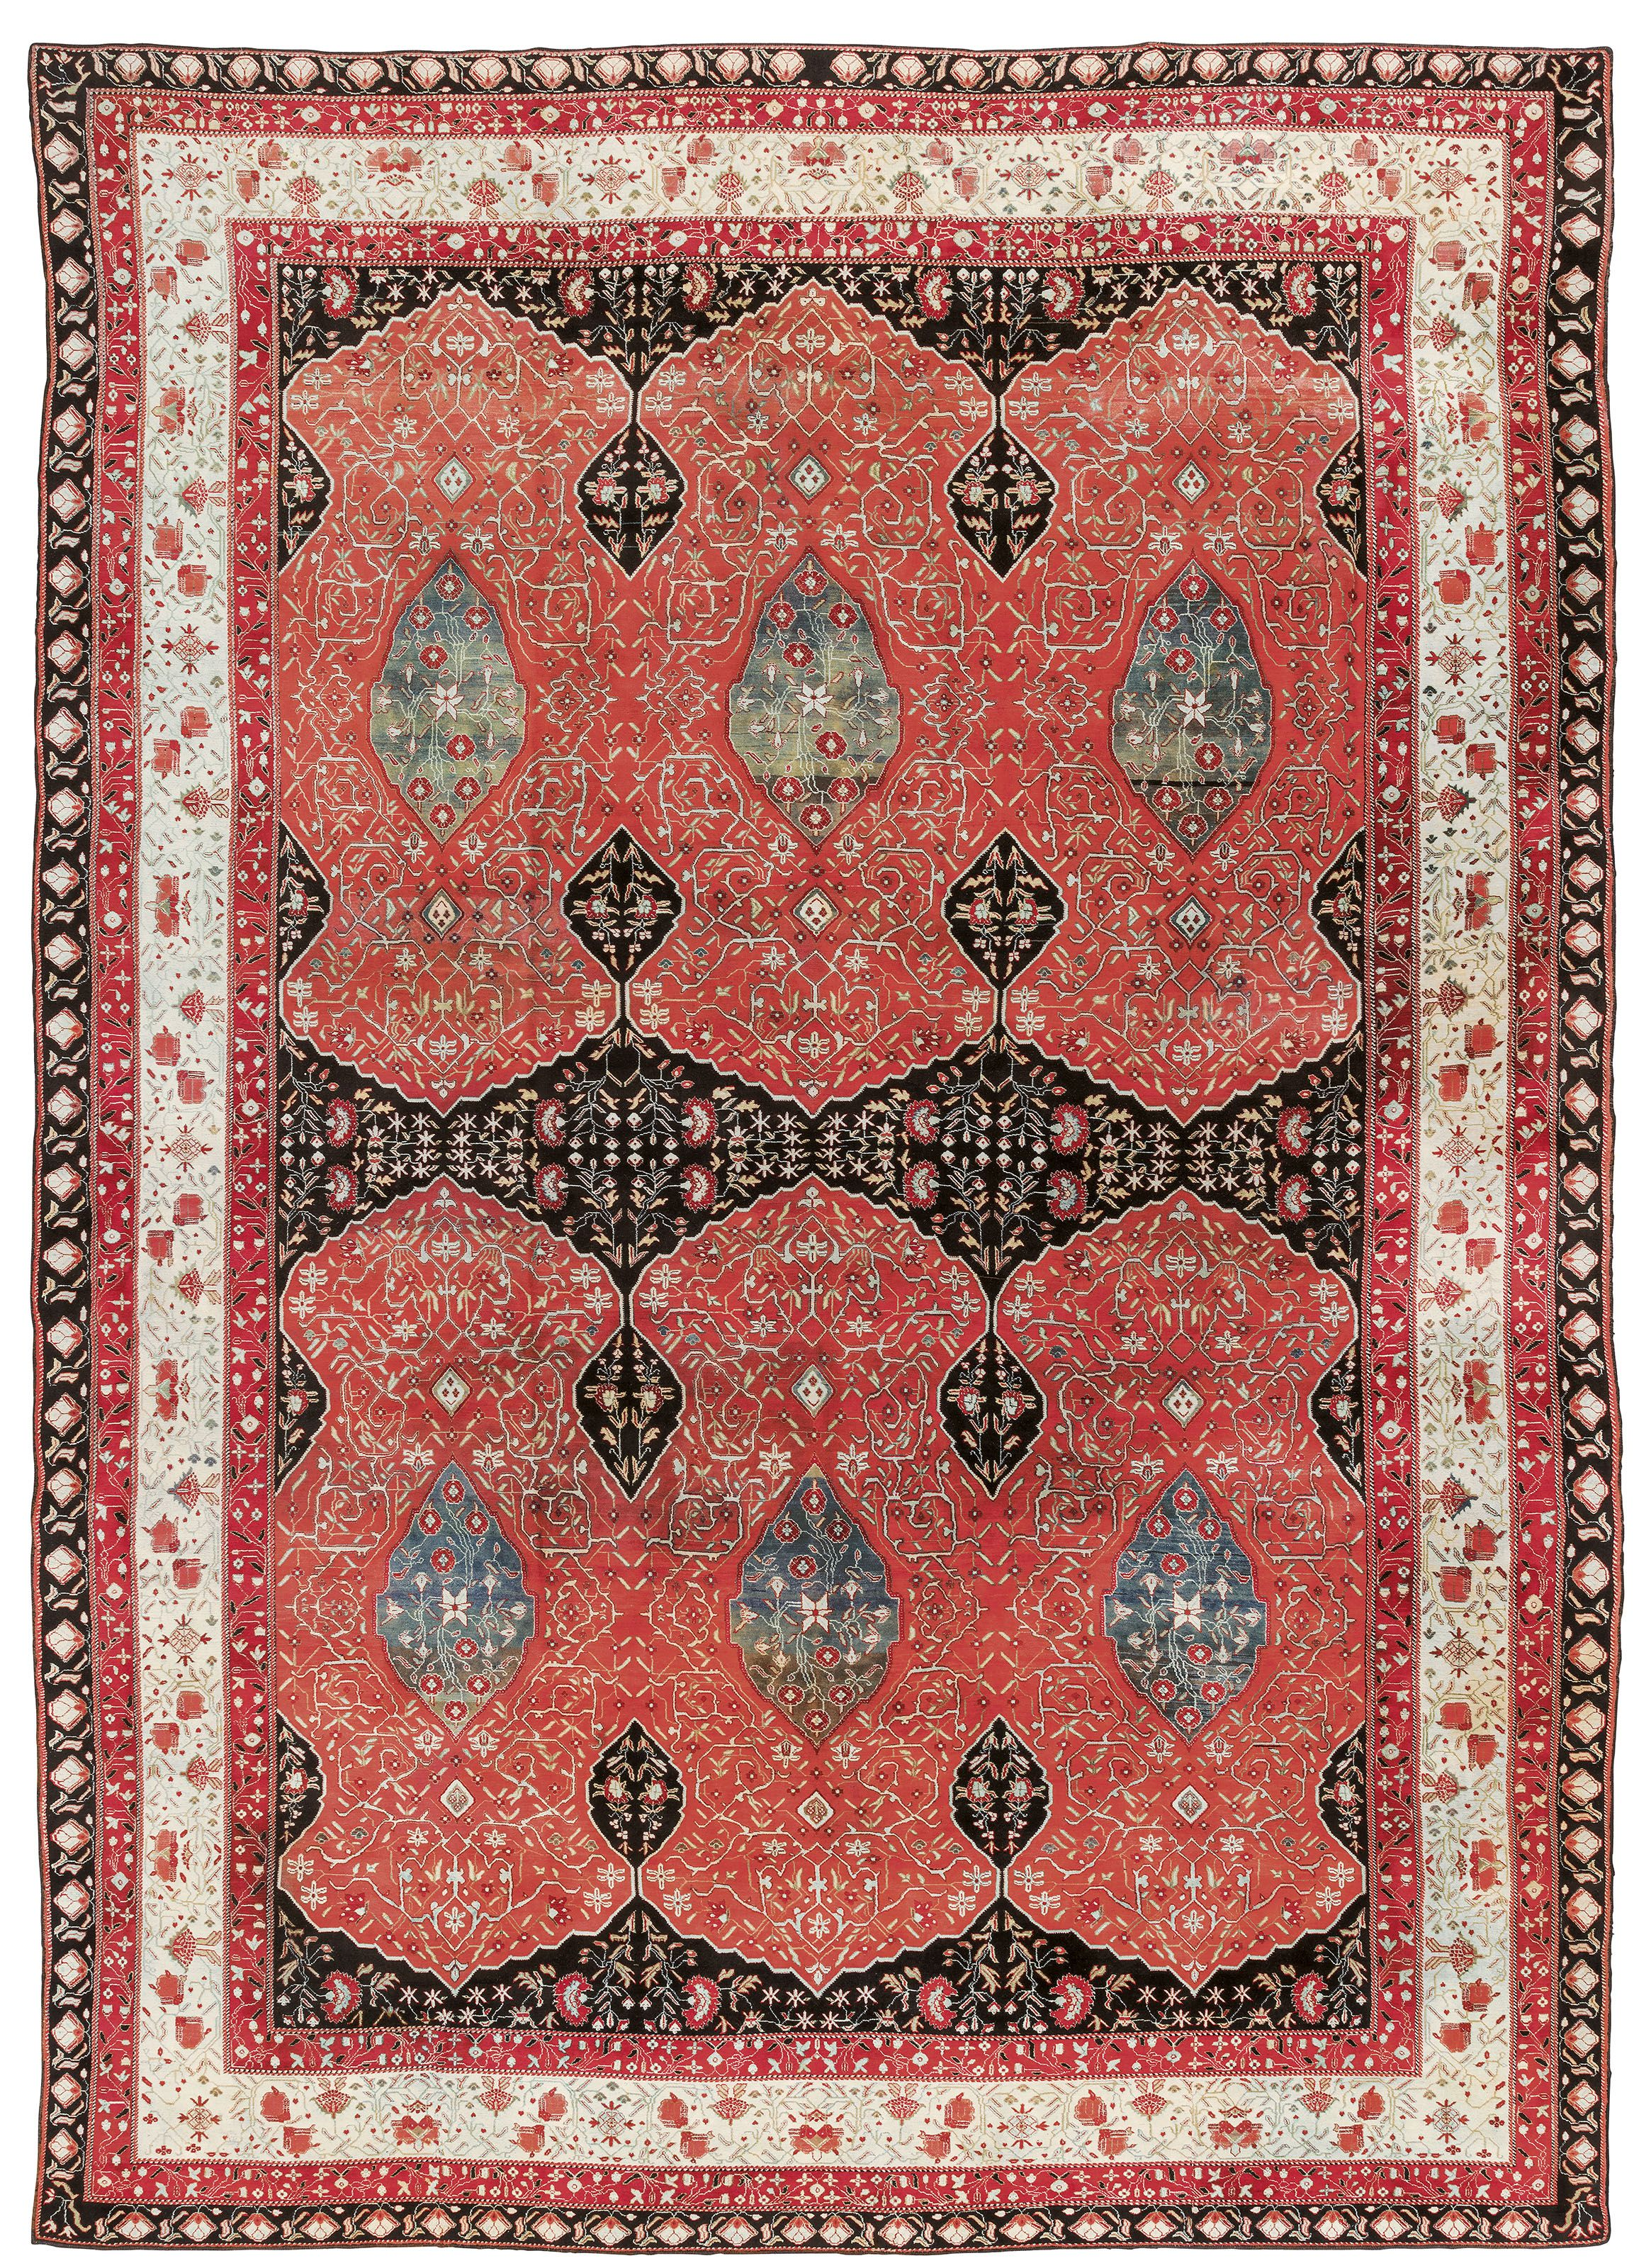 An Agra Carpet North India Late 19th Century Overall Carpet Christie S In 2020 Tribal Carpets North India Carpet